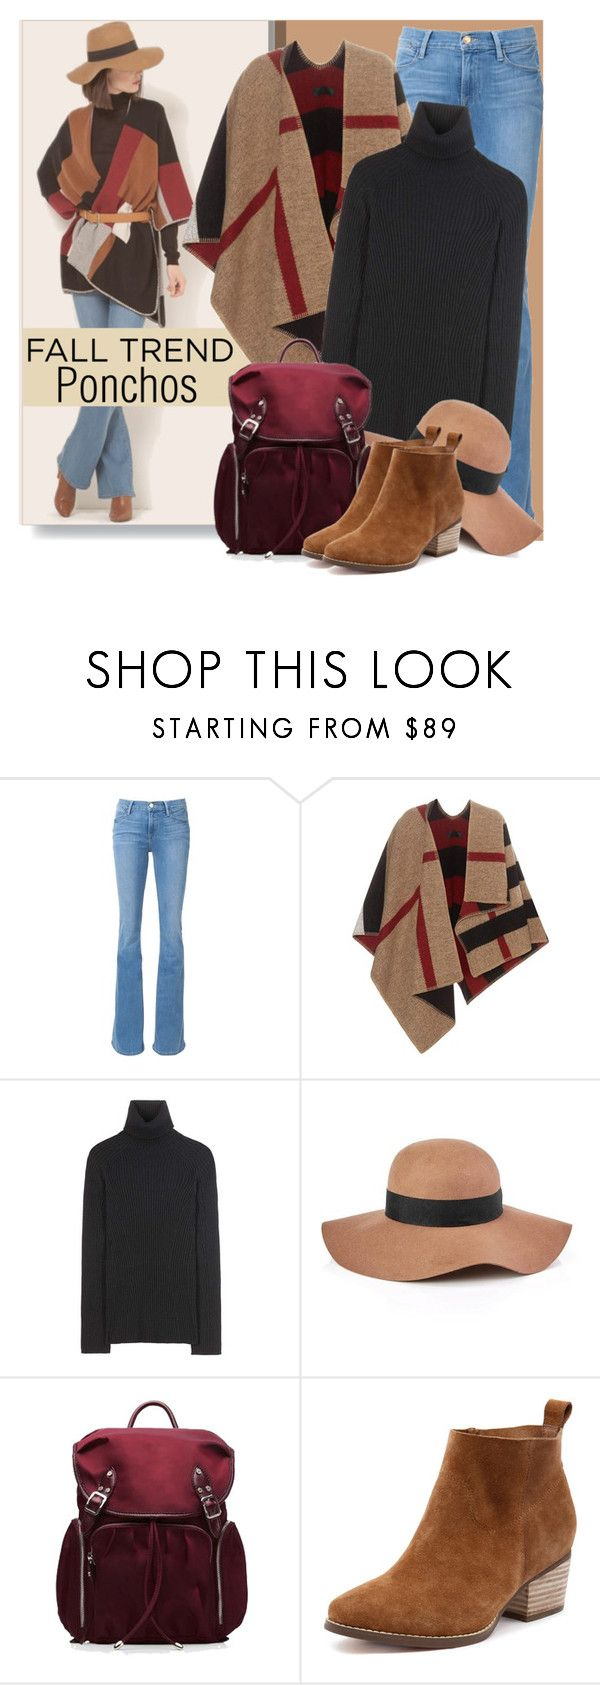 """""""Fall Trend:  Ponchos"""" by brendariley-1 ❤ liked on Polyvore featuring Frame Denim, Burberry, Erdem, Reiss and M Z Wallace"""